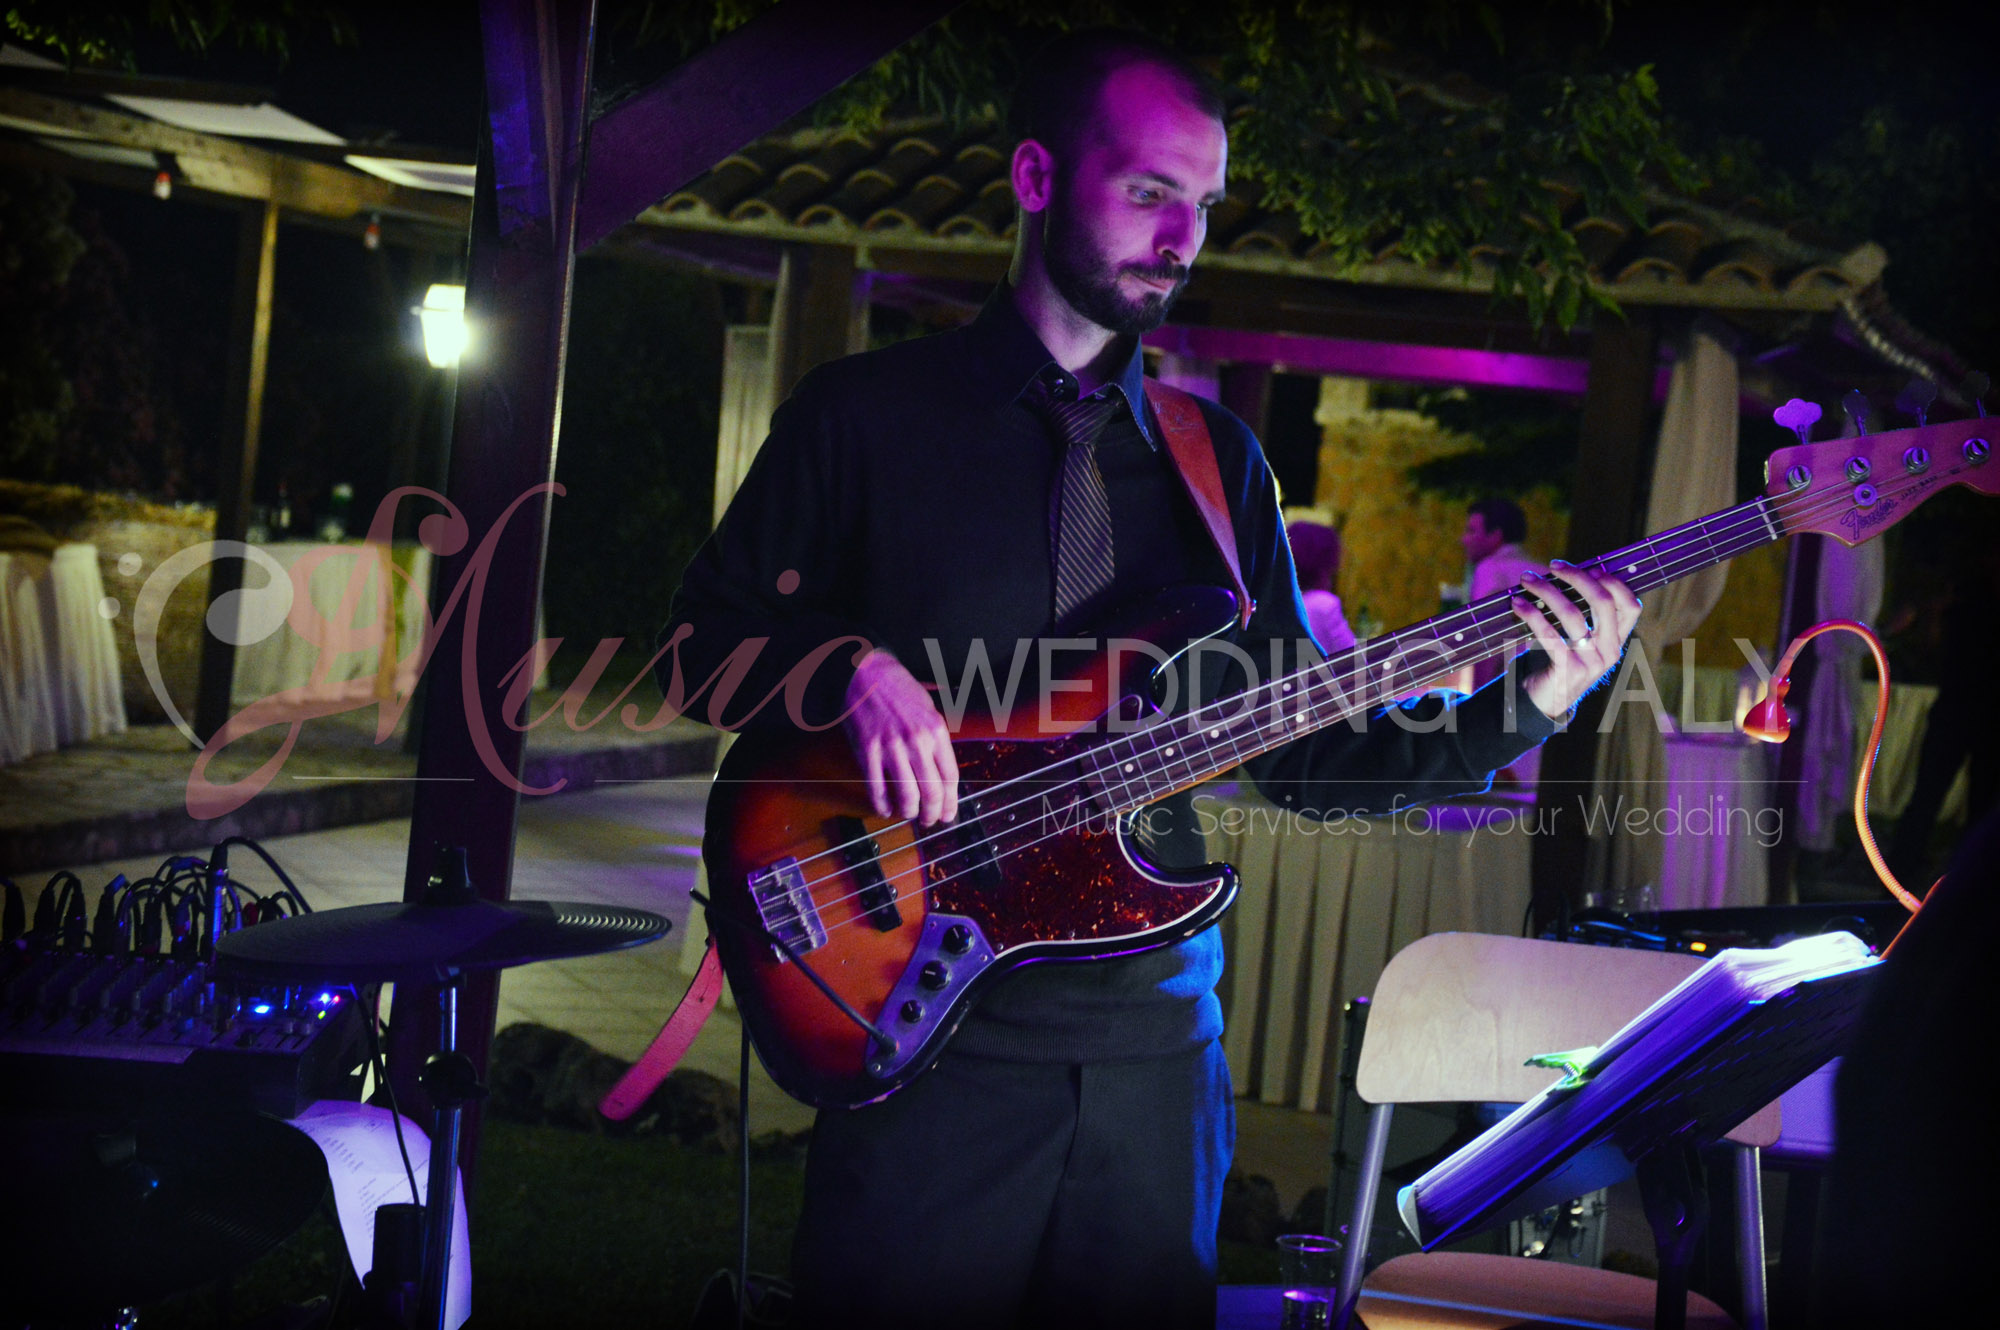 florence wedding live band, wedding band italy, revival 70 80 disco dance